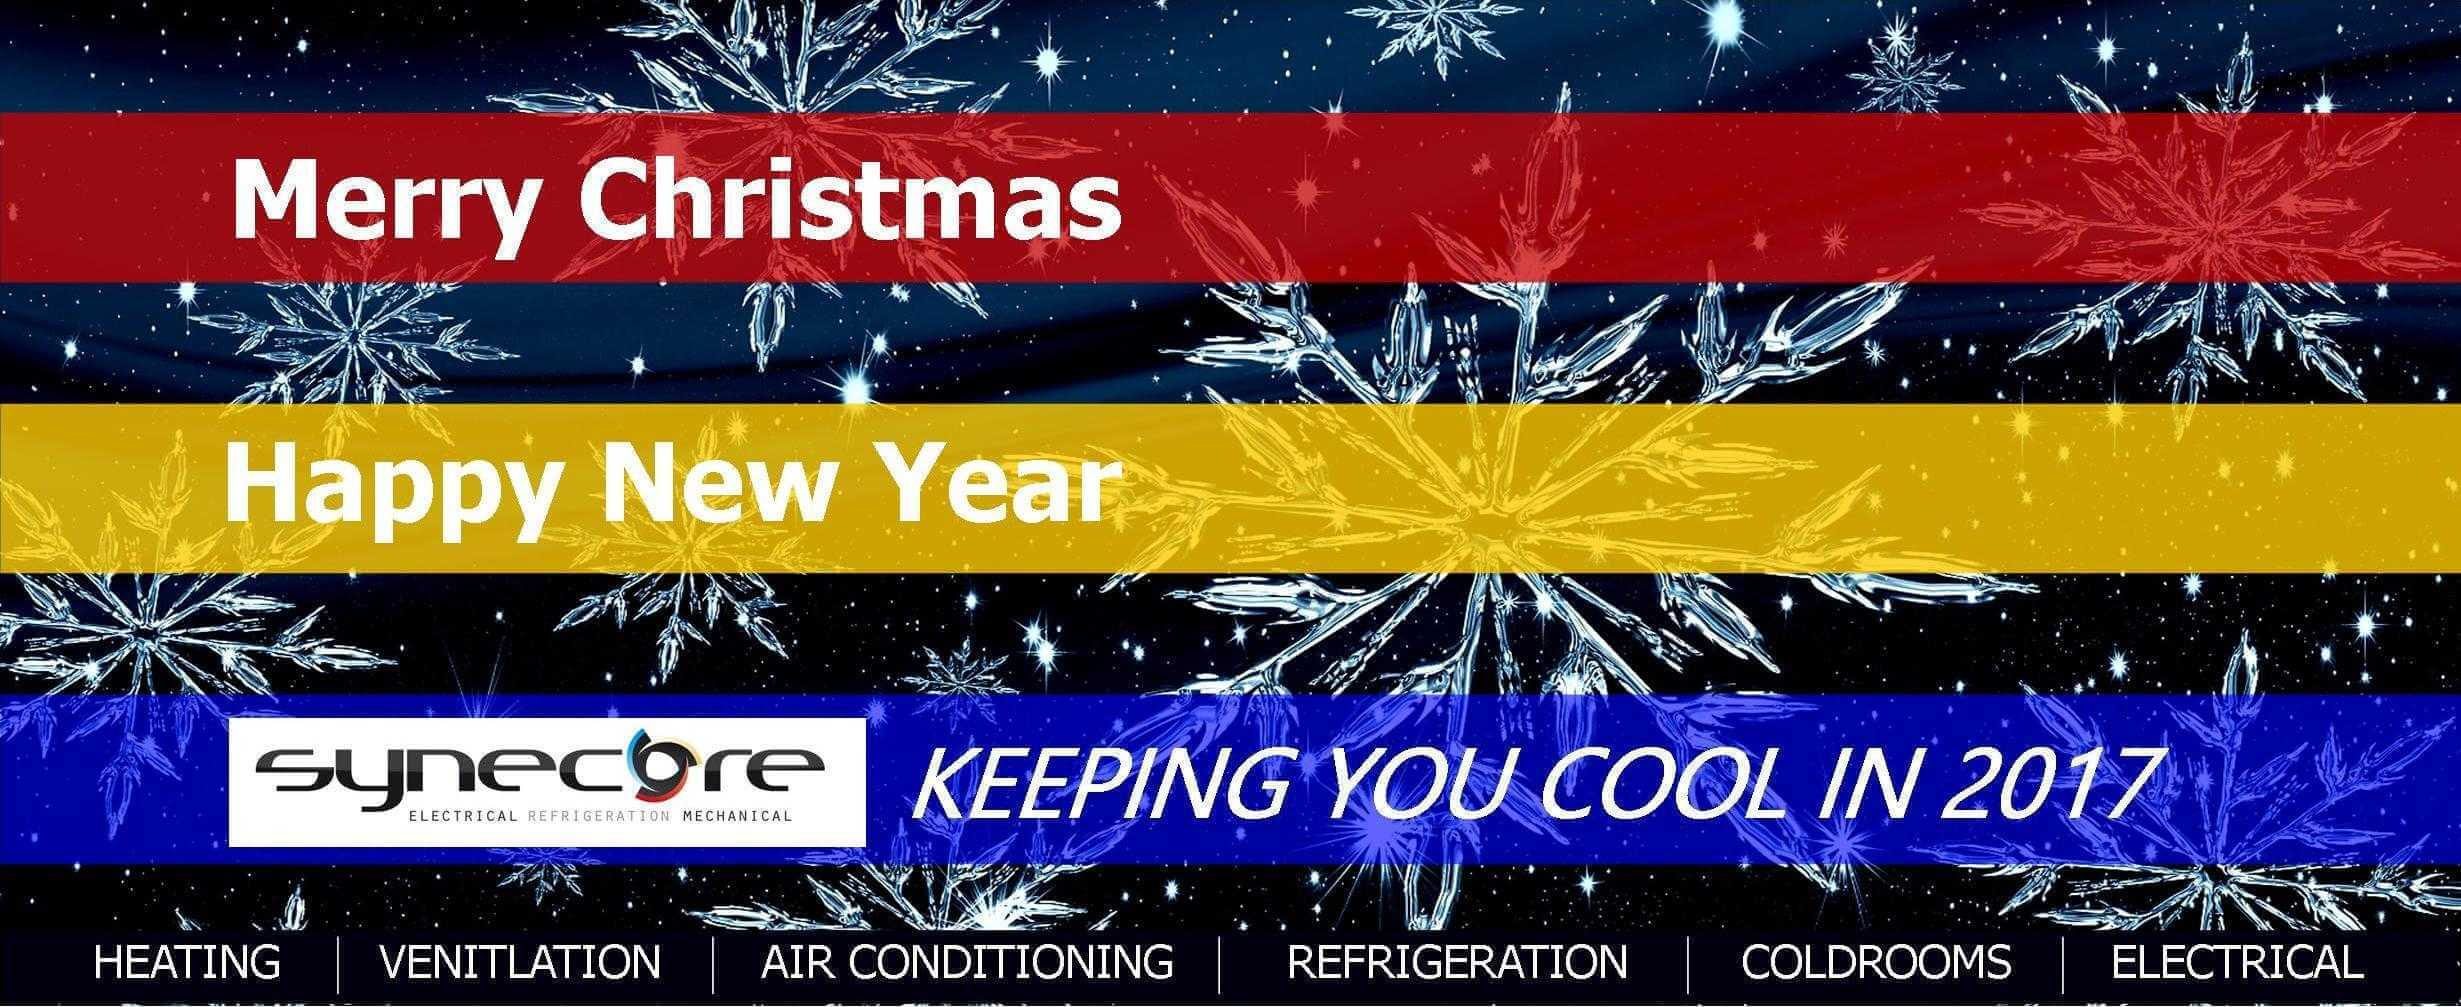 2016 All Wrapped Up Synecore Me Contractor Air Conditioning Refrigeration And Heating Electrical Produced By Mechanical Contracting